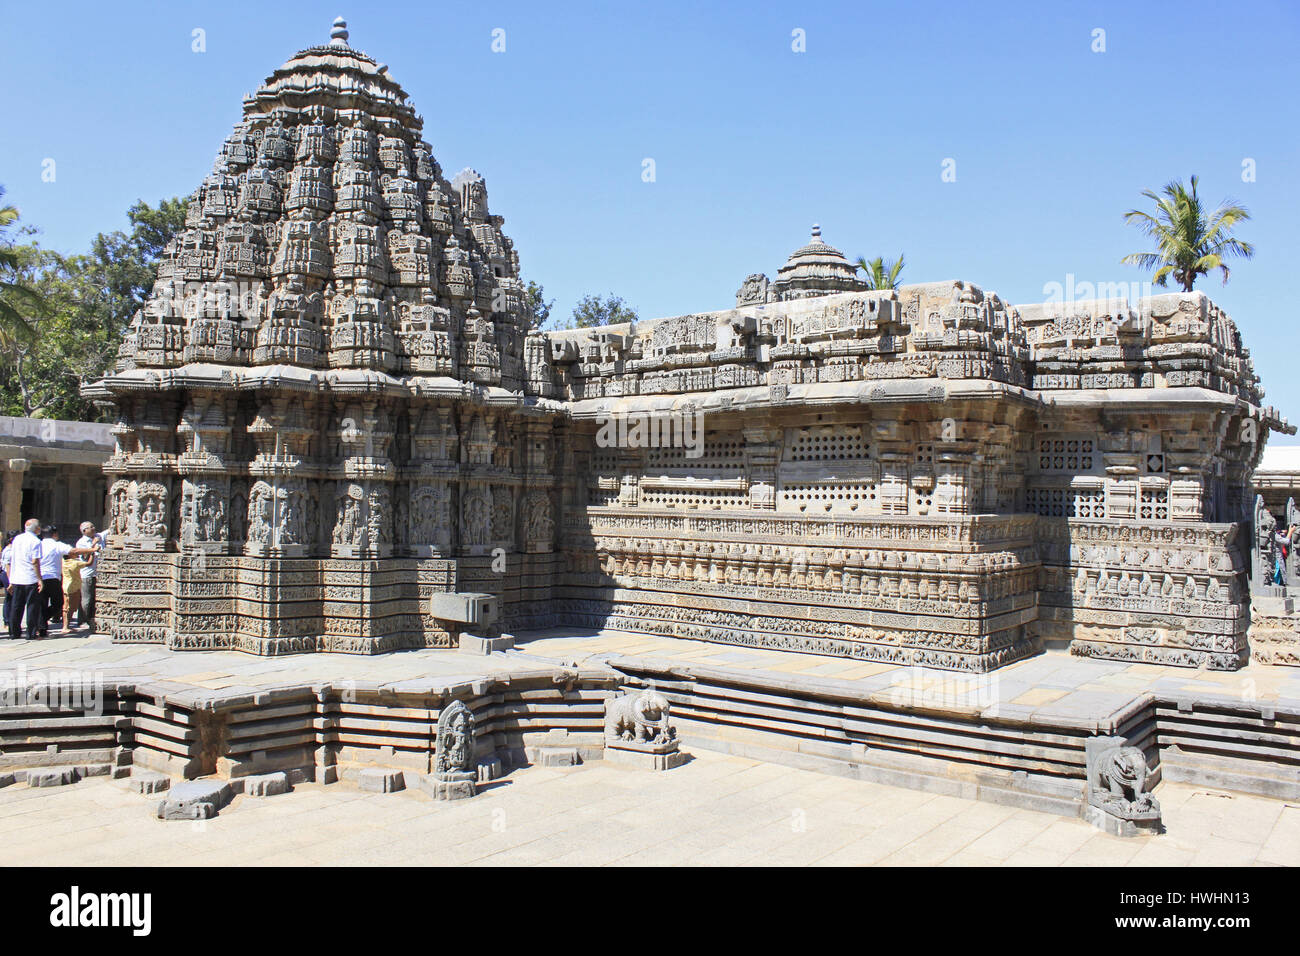 South east view of main shrine , showcasing stellate in design and their towers follow the same pattern, structure looks like a rhythmic progression o Stock Photo